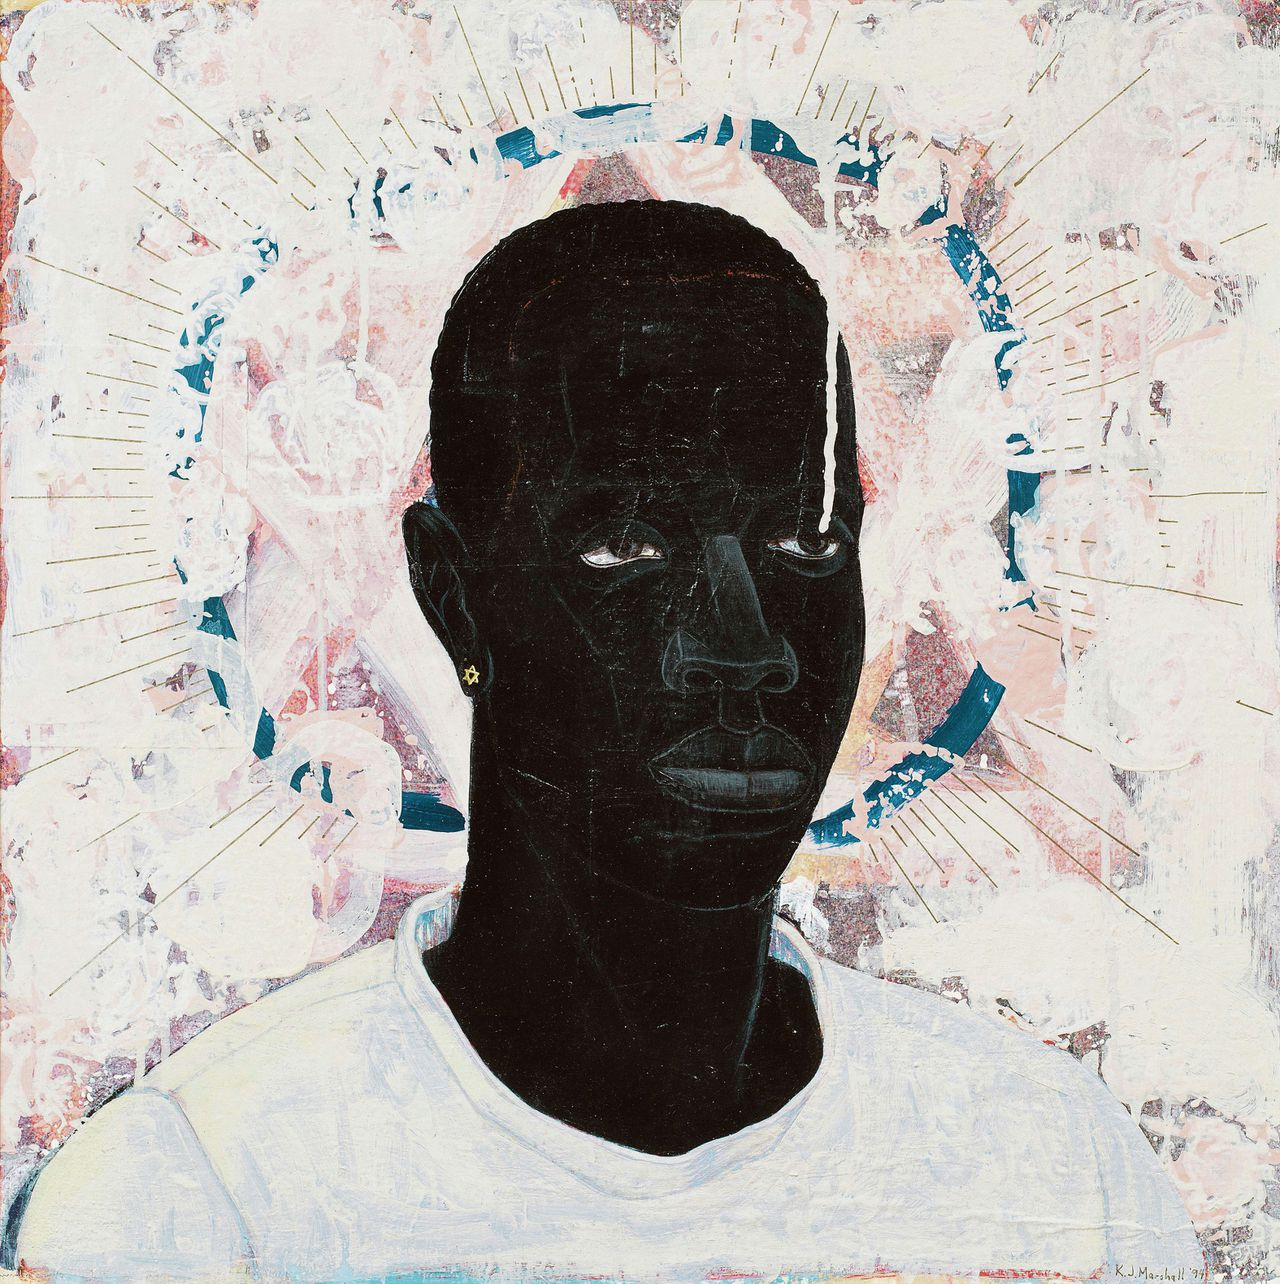 Kerry James Marshall: Lost Boys AKA Black Johnny, 1993